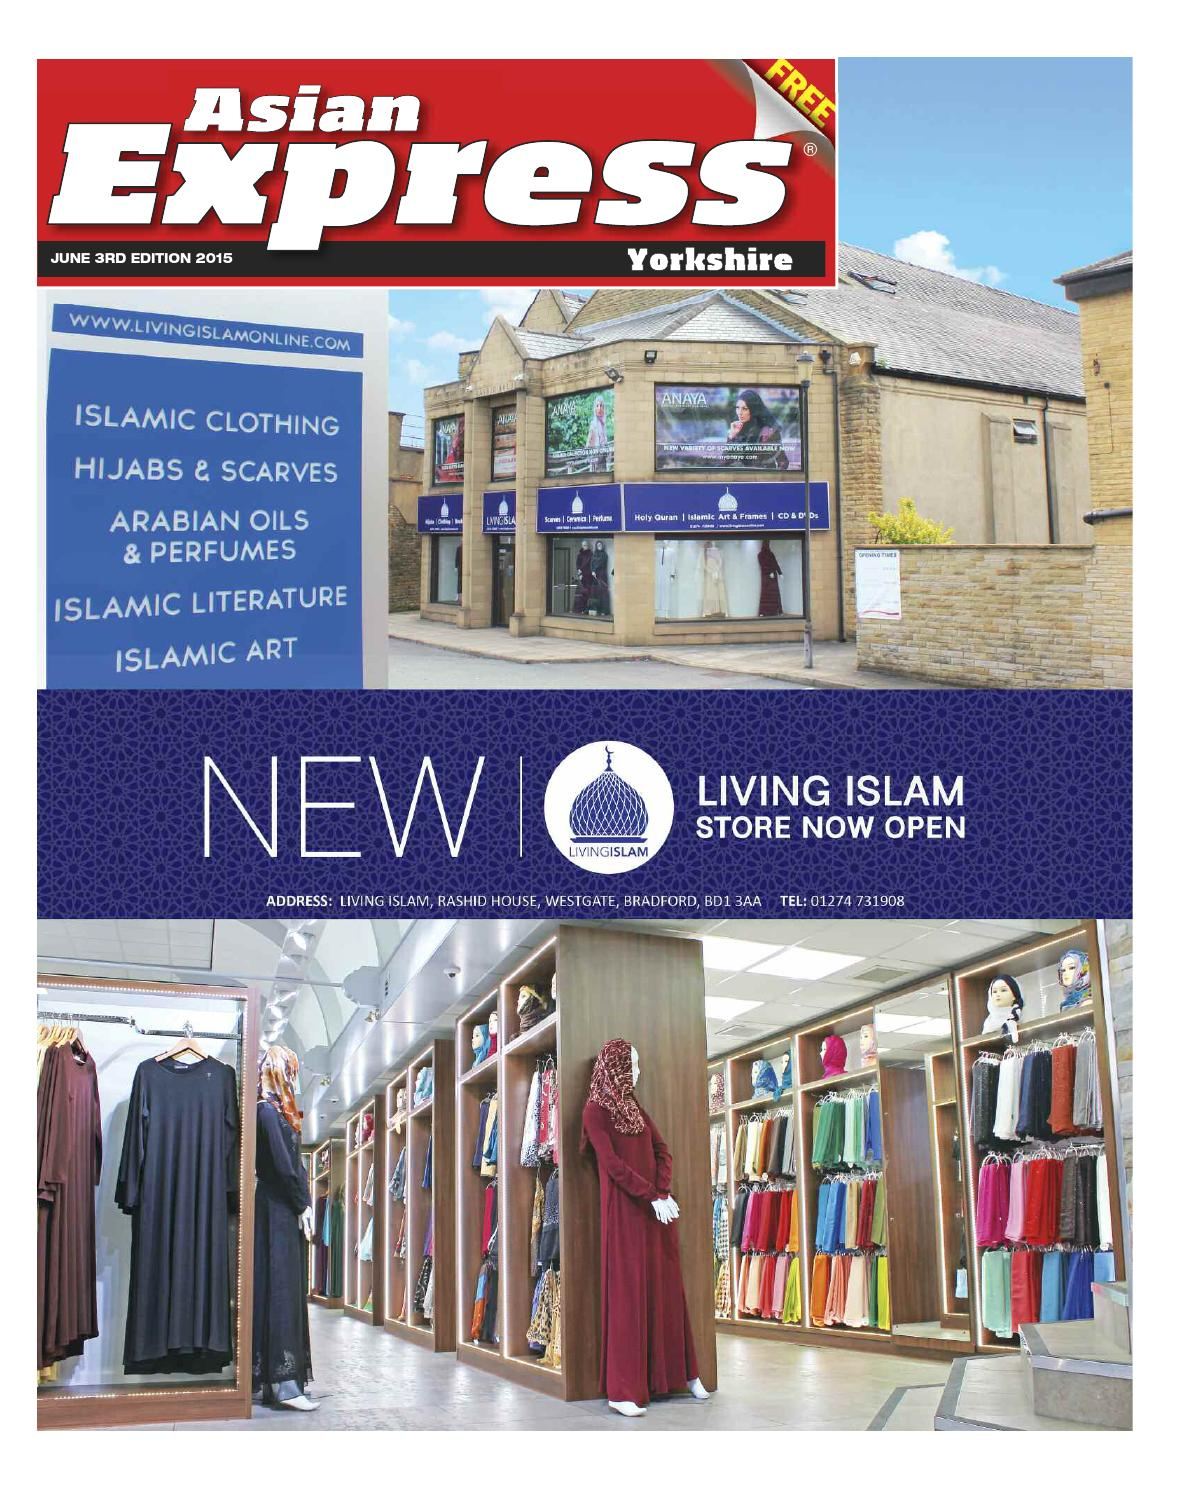 Asian express yorkshire june 3rd edition 2015 by asian expres issuu solutioingenieria Choice Image